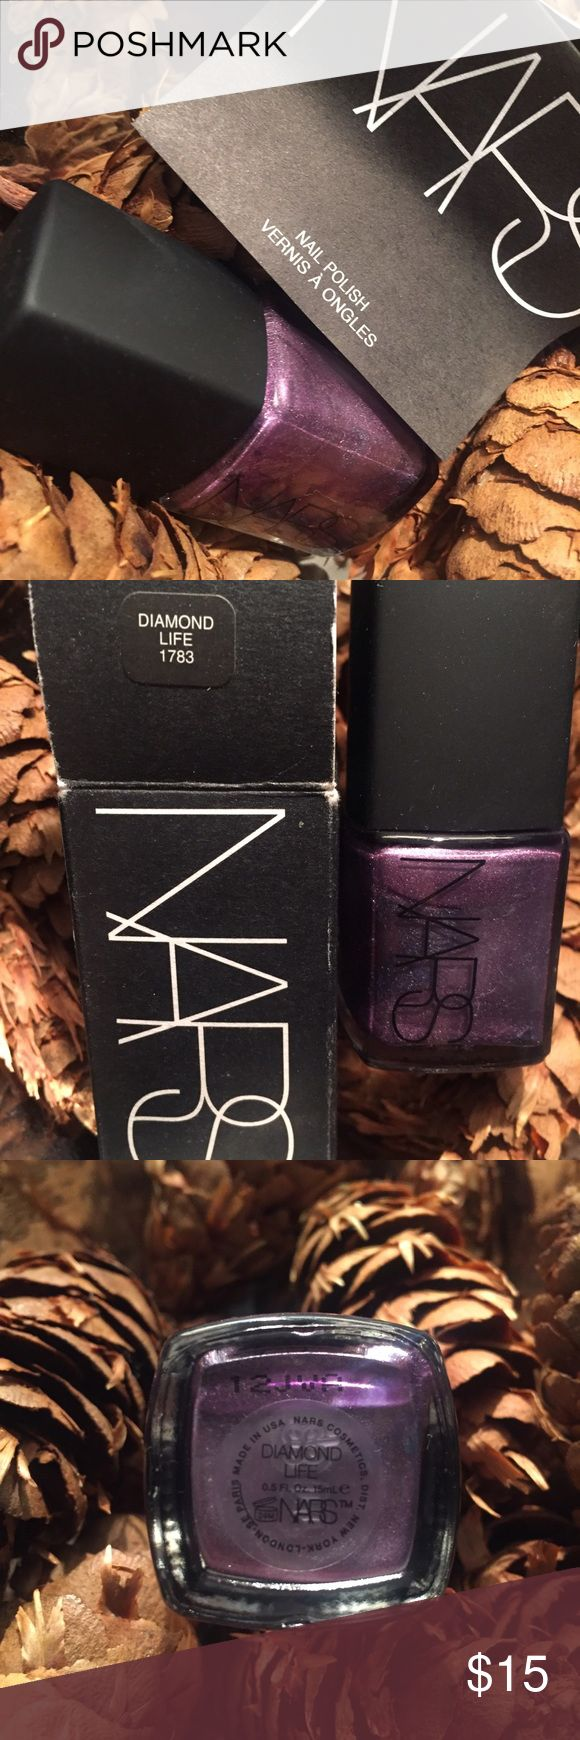 NARS Shimmer Nail Polish, Diamond Life NARS Shimmer Nail Polish, Diamond Life. Brand new with box and paper booklet. NARS Other